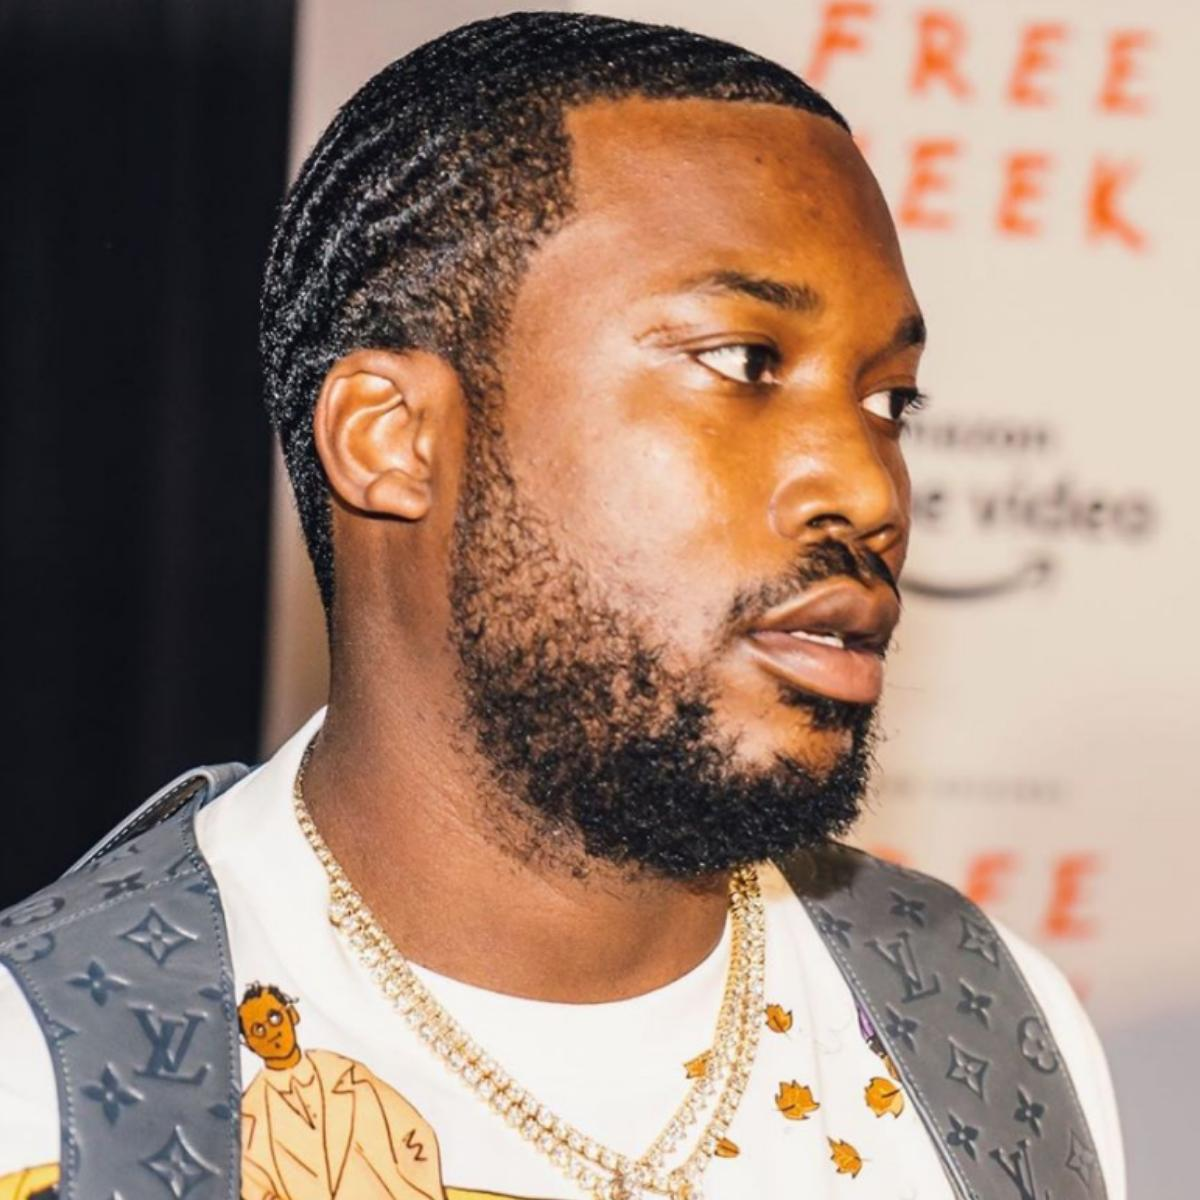 Meek Mill Critics Of His Fight Injustice In America